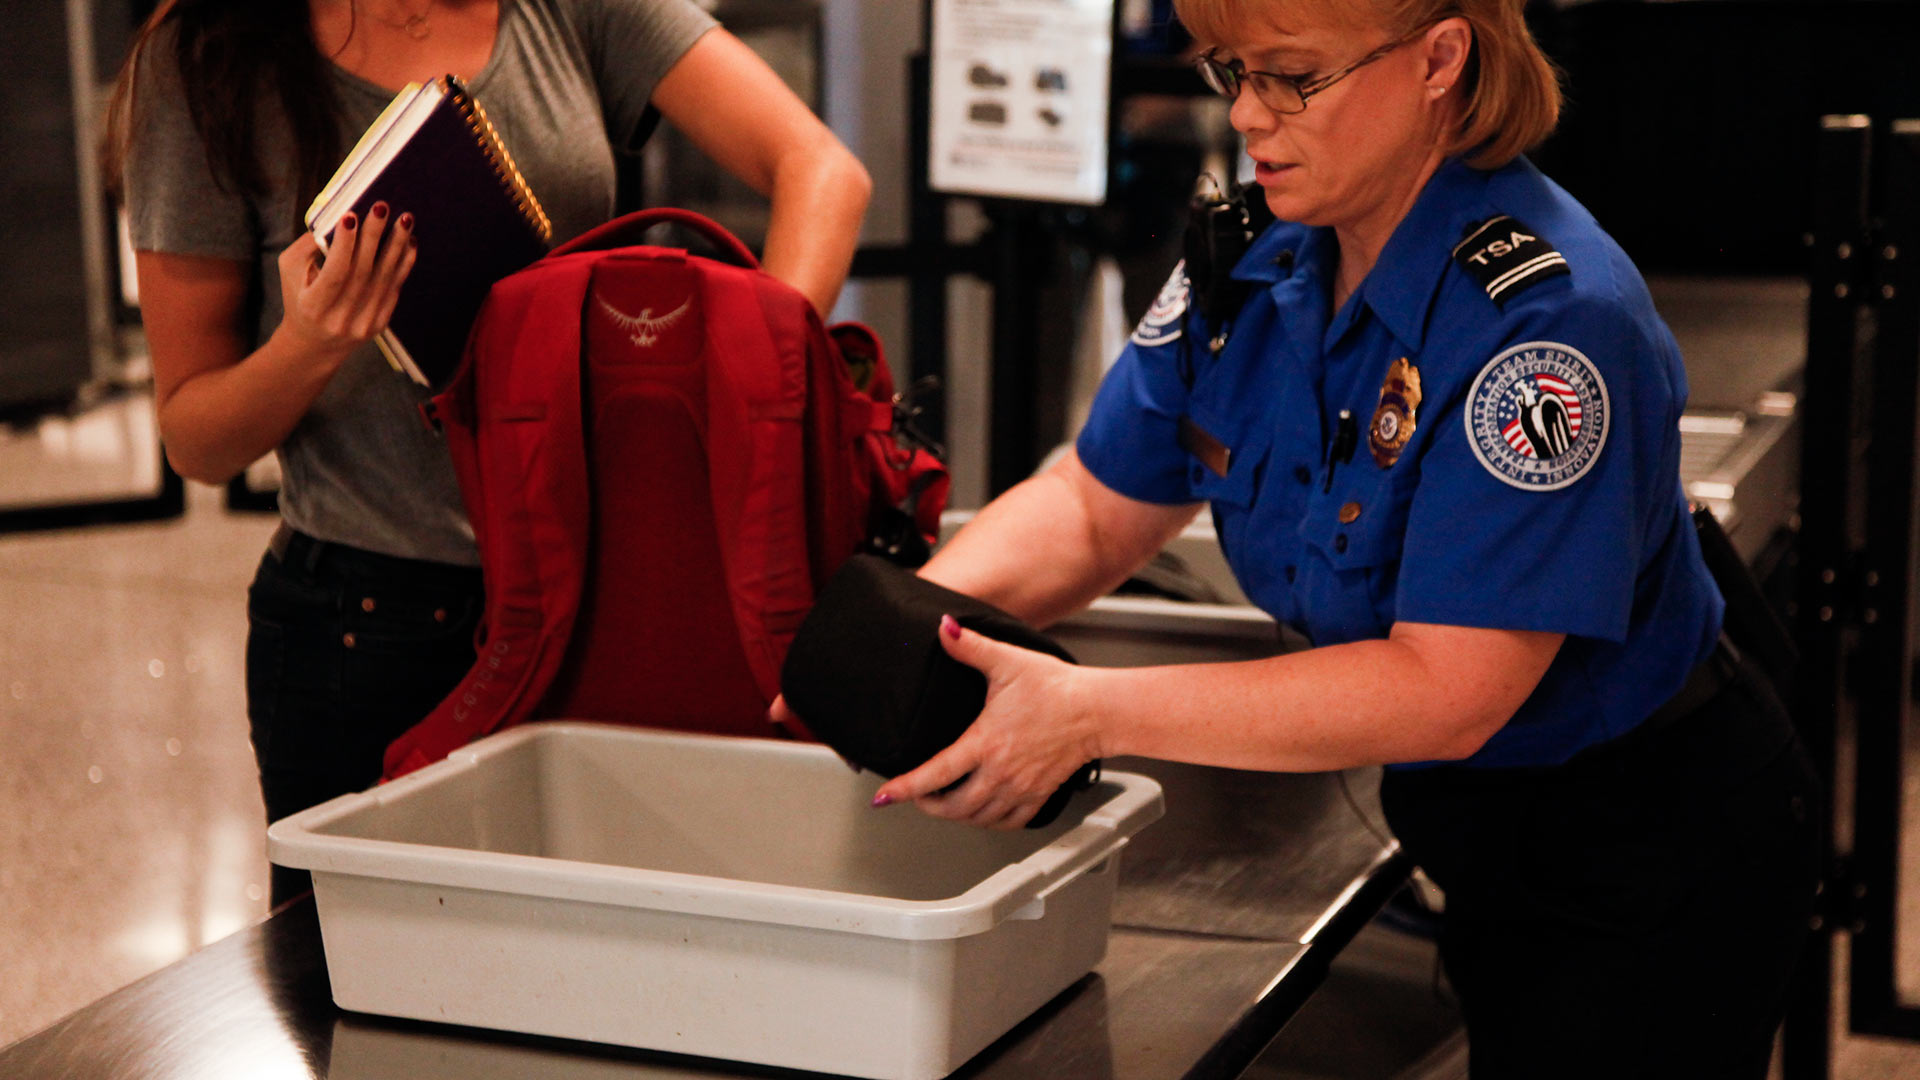 Tucson International Airport implemented tighter rules for carry-on items in Oct. 24, 2017.